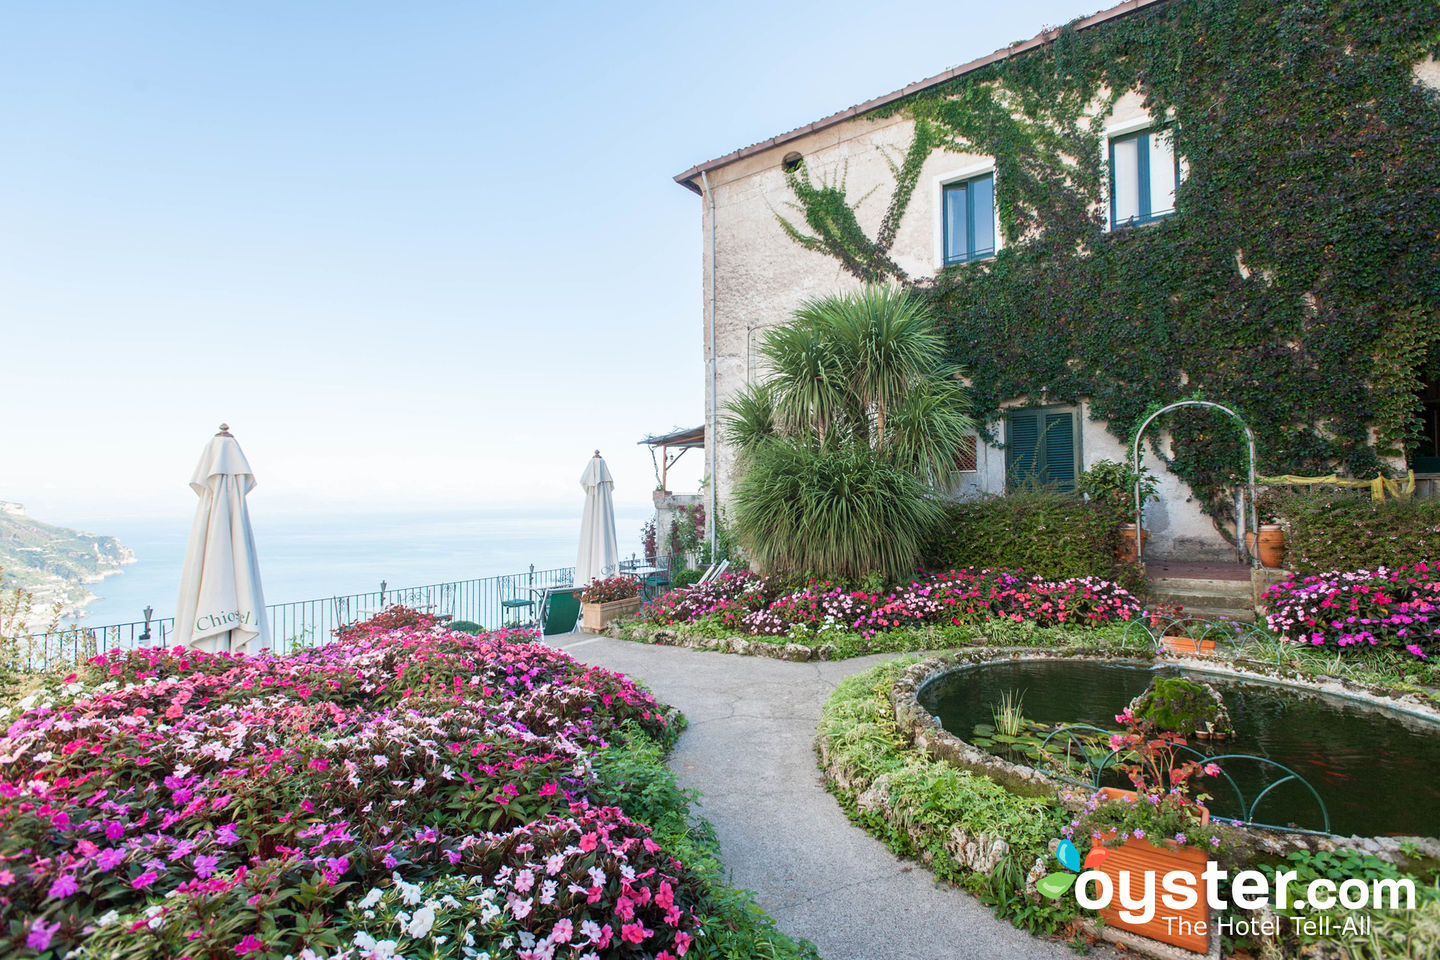 The 15 Most Charming Hotels Along the Amalfi Coast